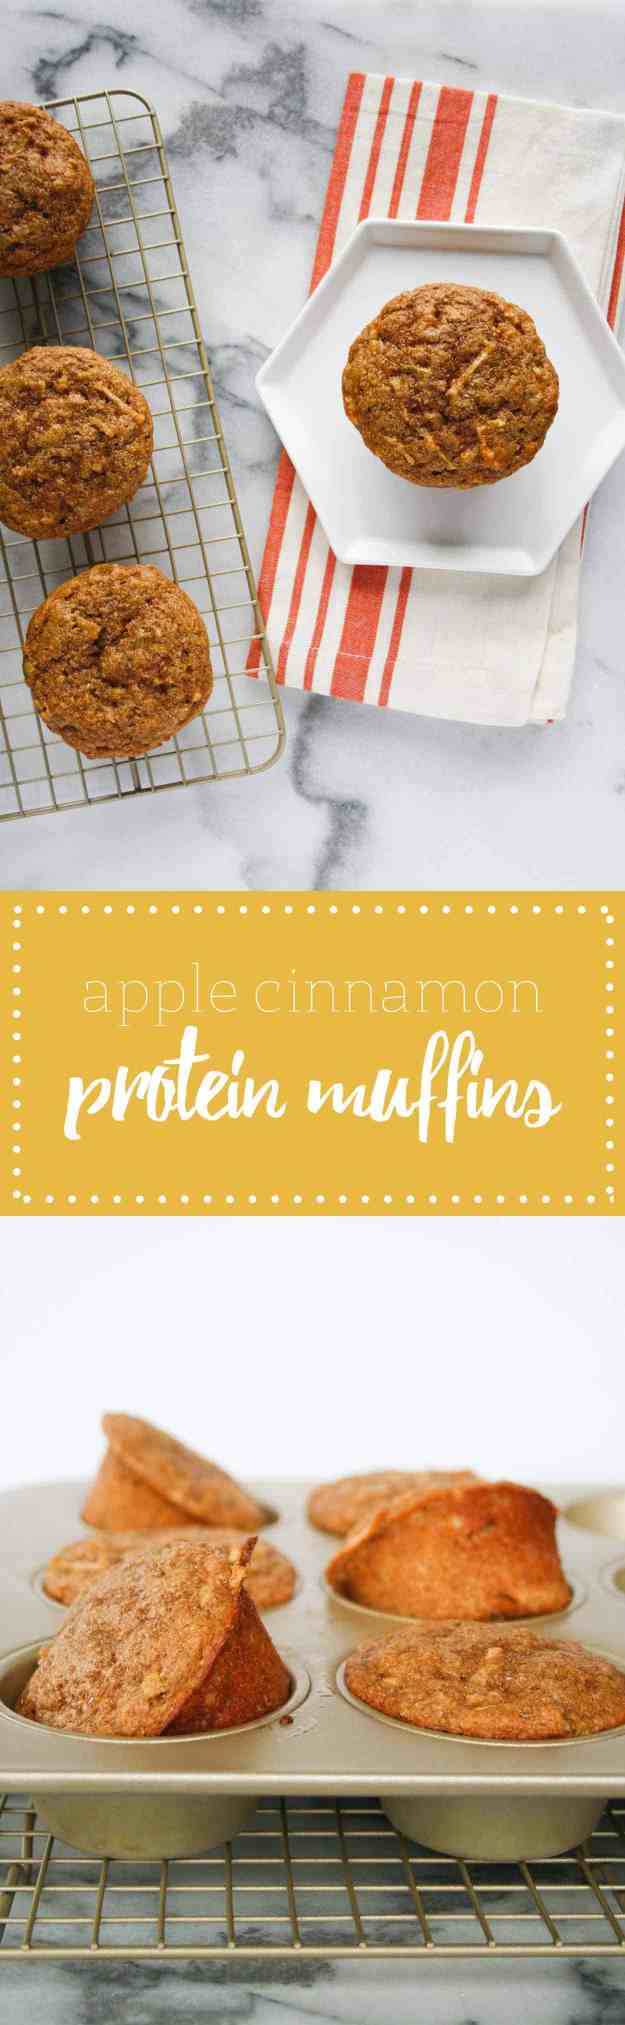 apple cinnamon protein muffins pinterest